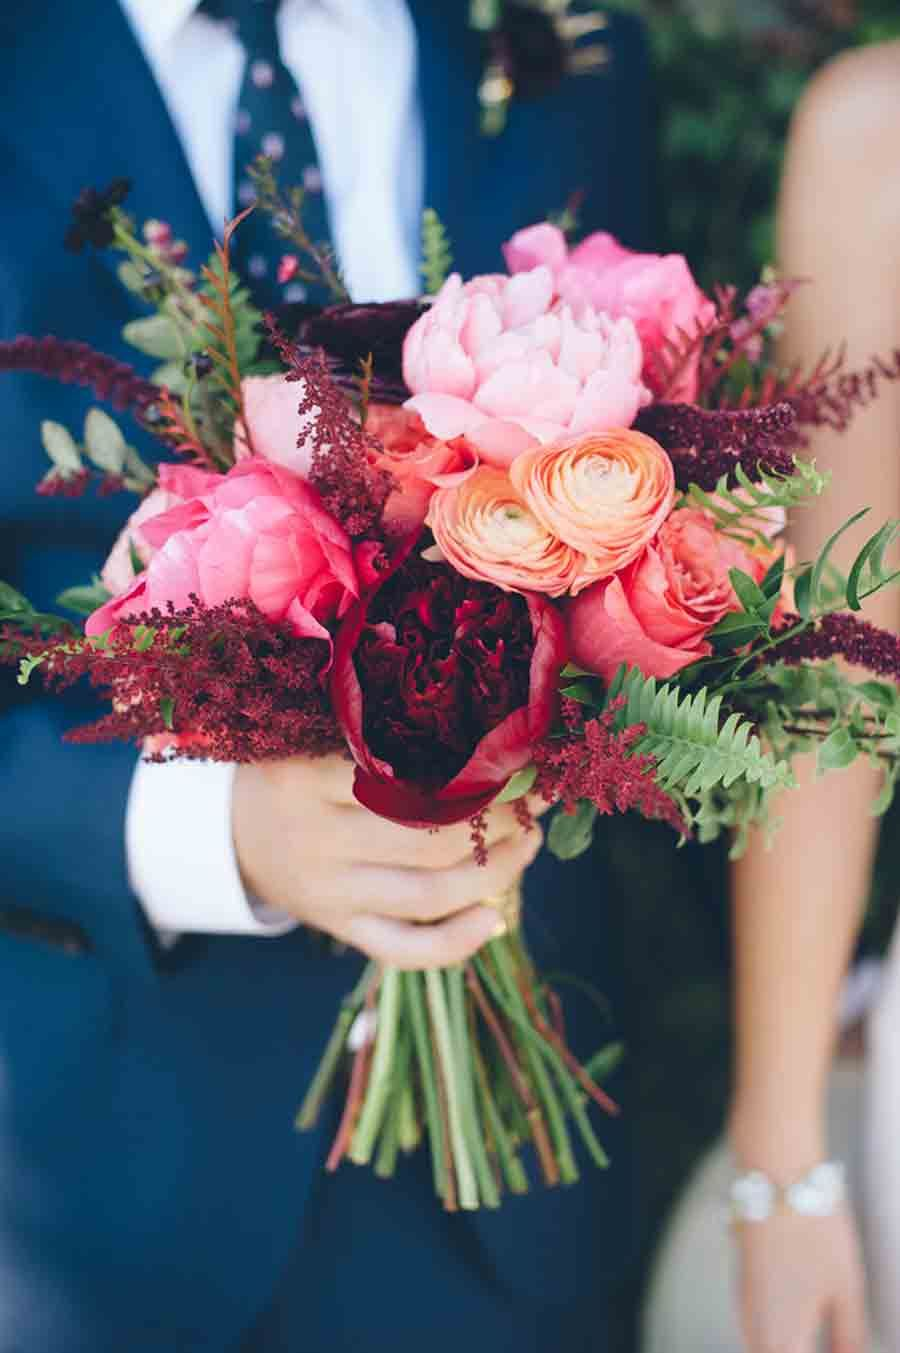 22 beautiful wedding bouquets for july wedding flowers decor july wedding flower bouquet bridal flowers arrangements ranunculus peonies roses bride groom ceremony izmirmasajfo